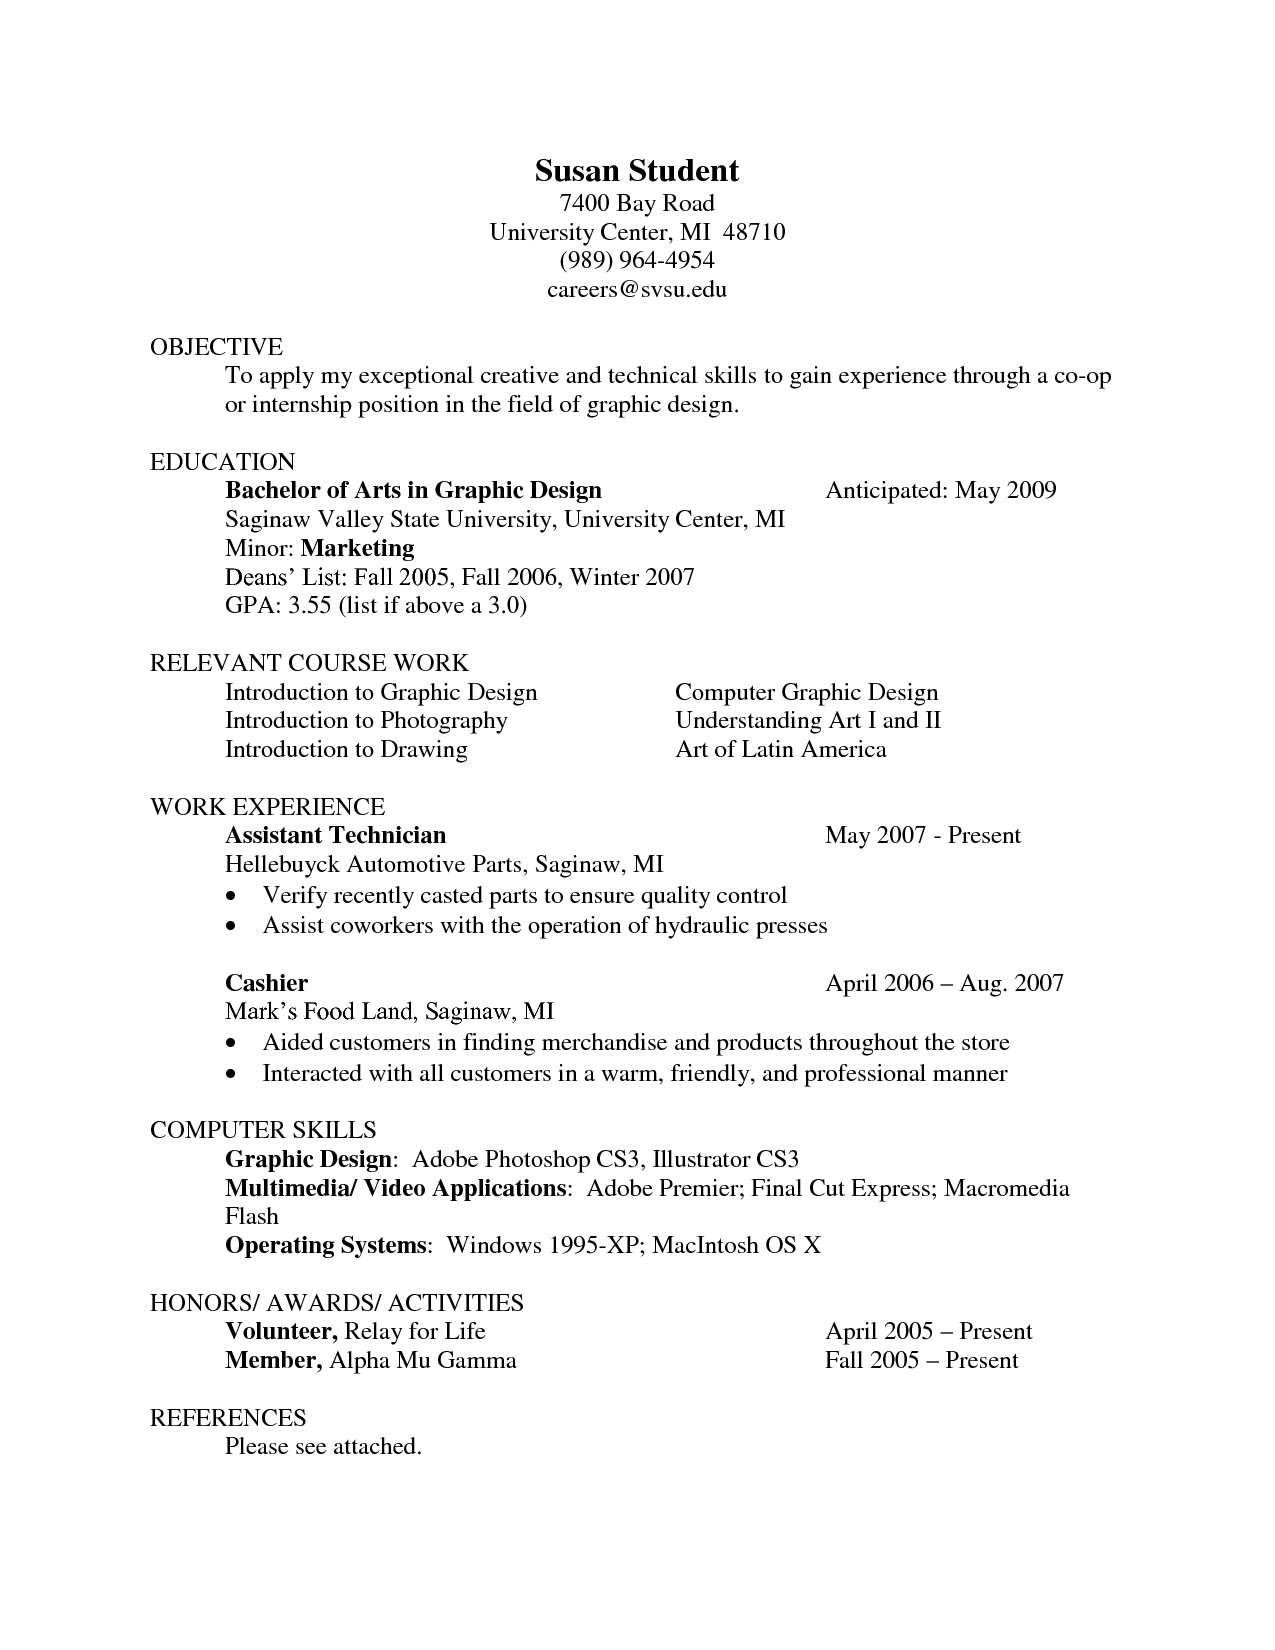 References For Resume Resume References Format References Resume Format Resume For Study